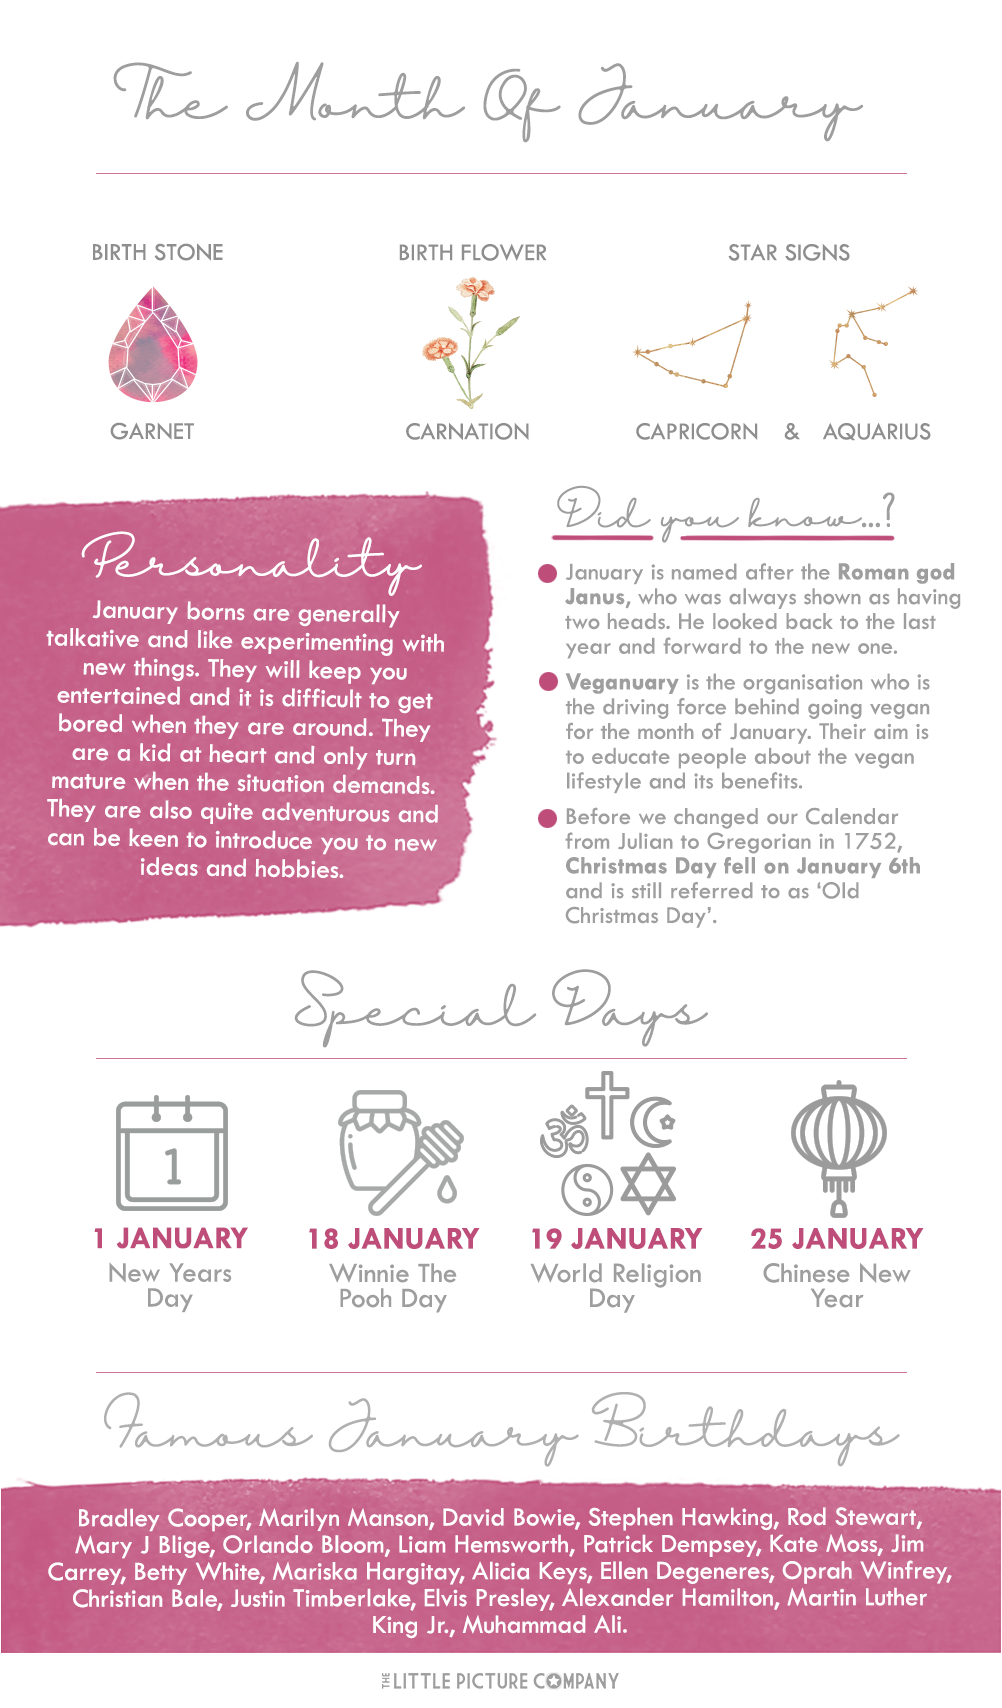 January Birthday Fun Facts and Gift Guide